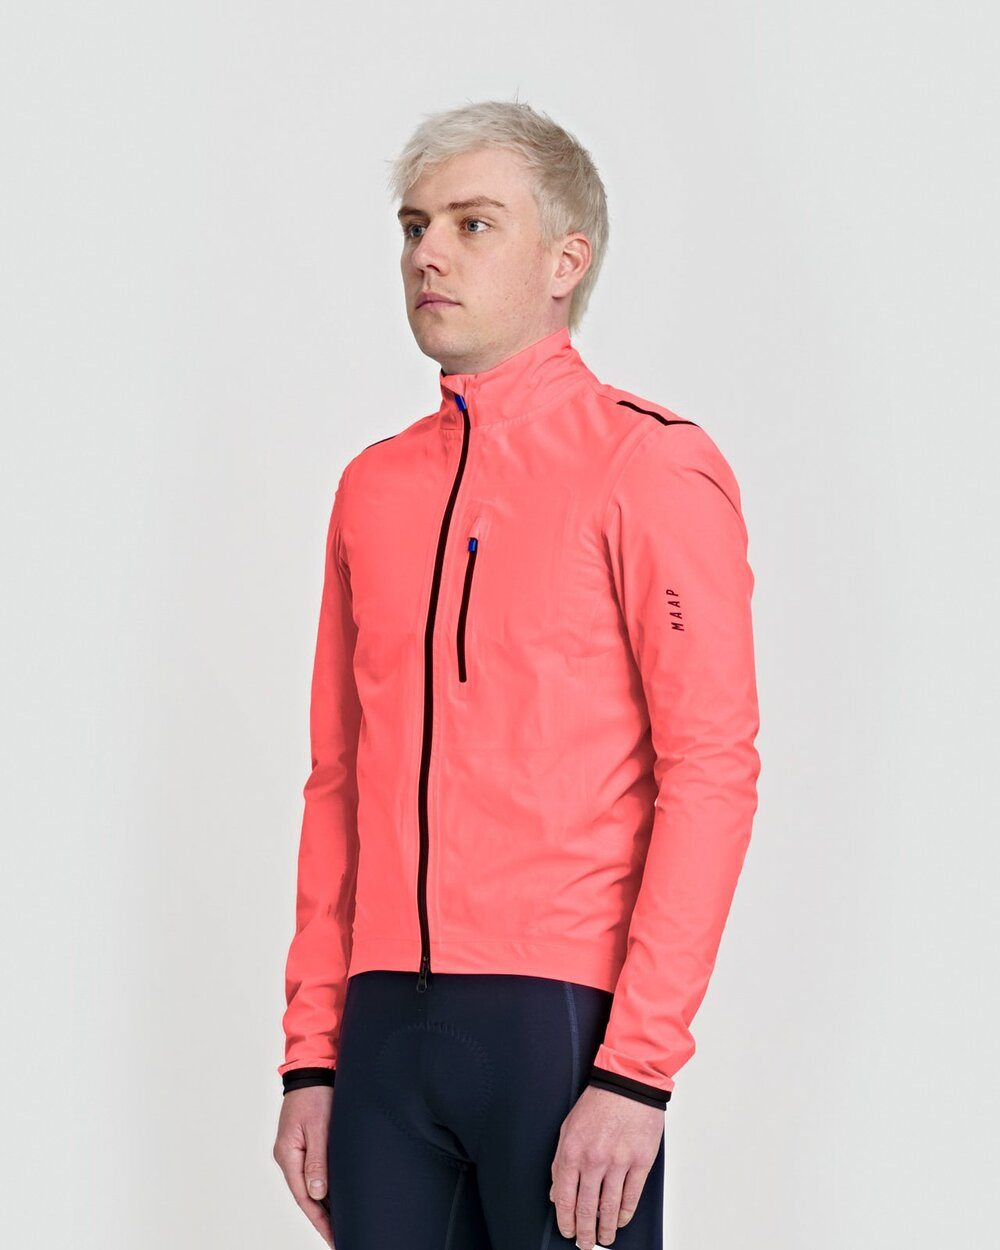 Ascend Pro Rain Jacket - Light Coral Cycling Jacket MAAP